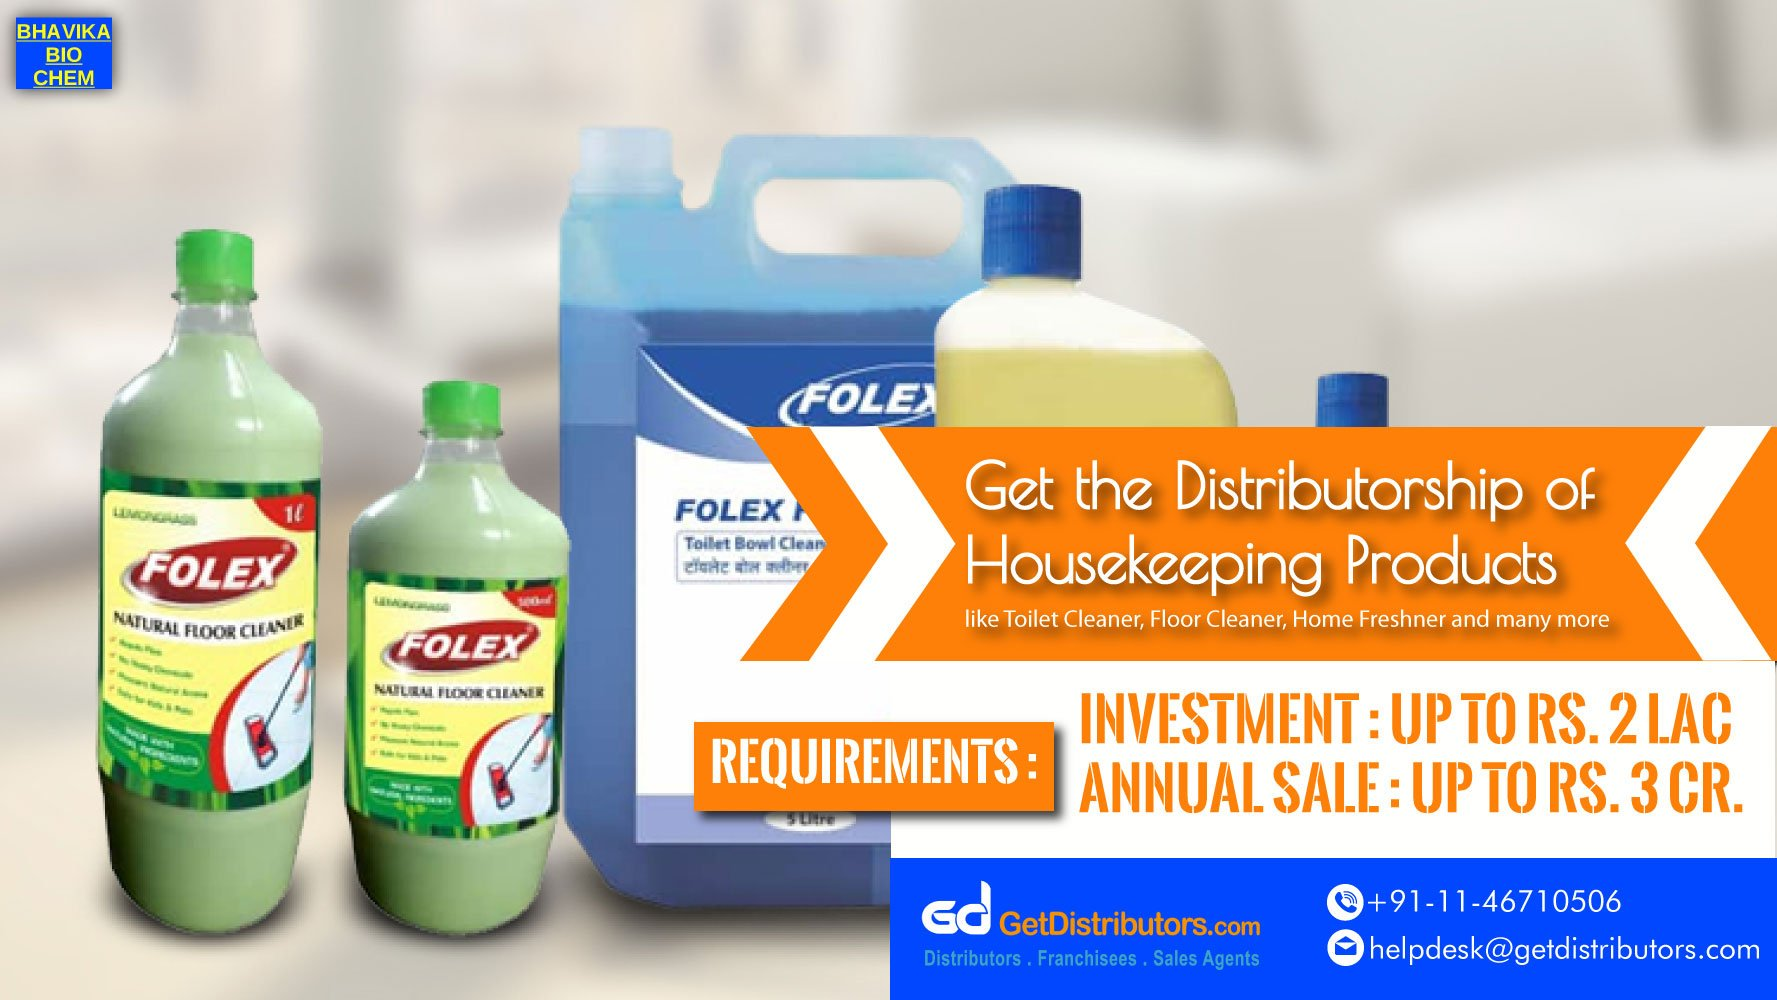 How To Take The Distributorship Of Non Toxic Chemicals At Budget Friendly Prices